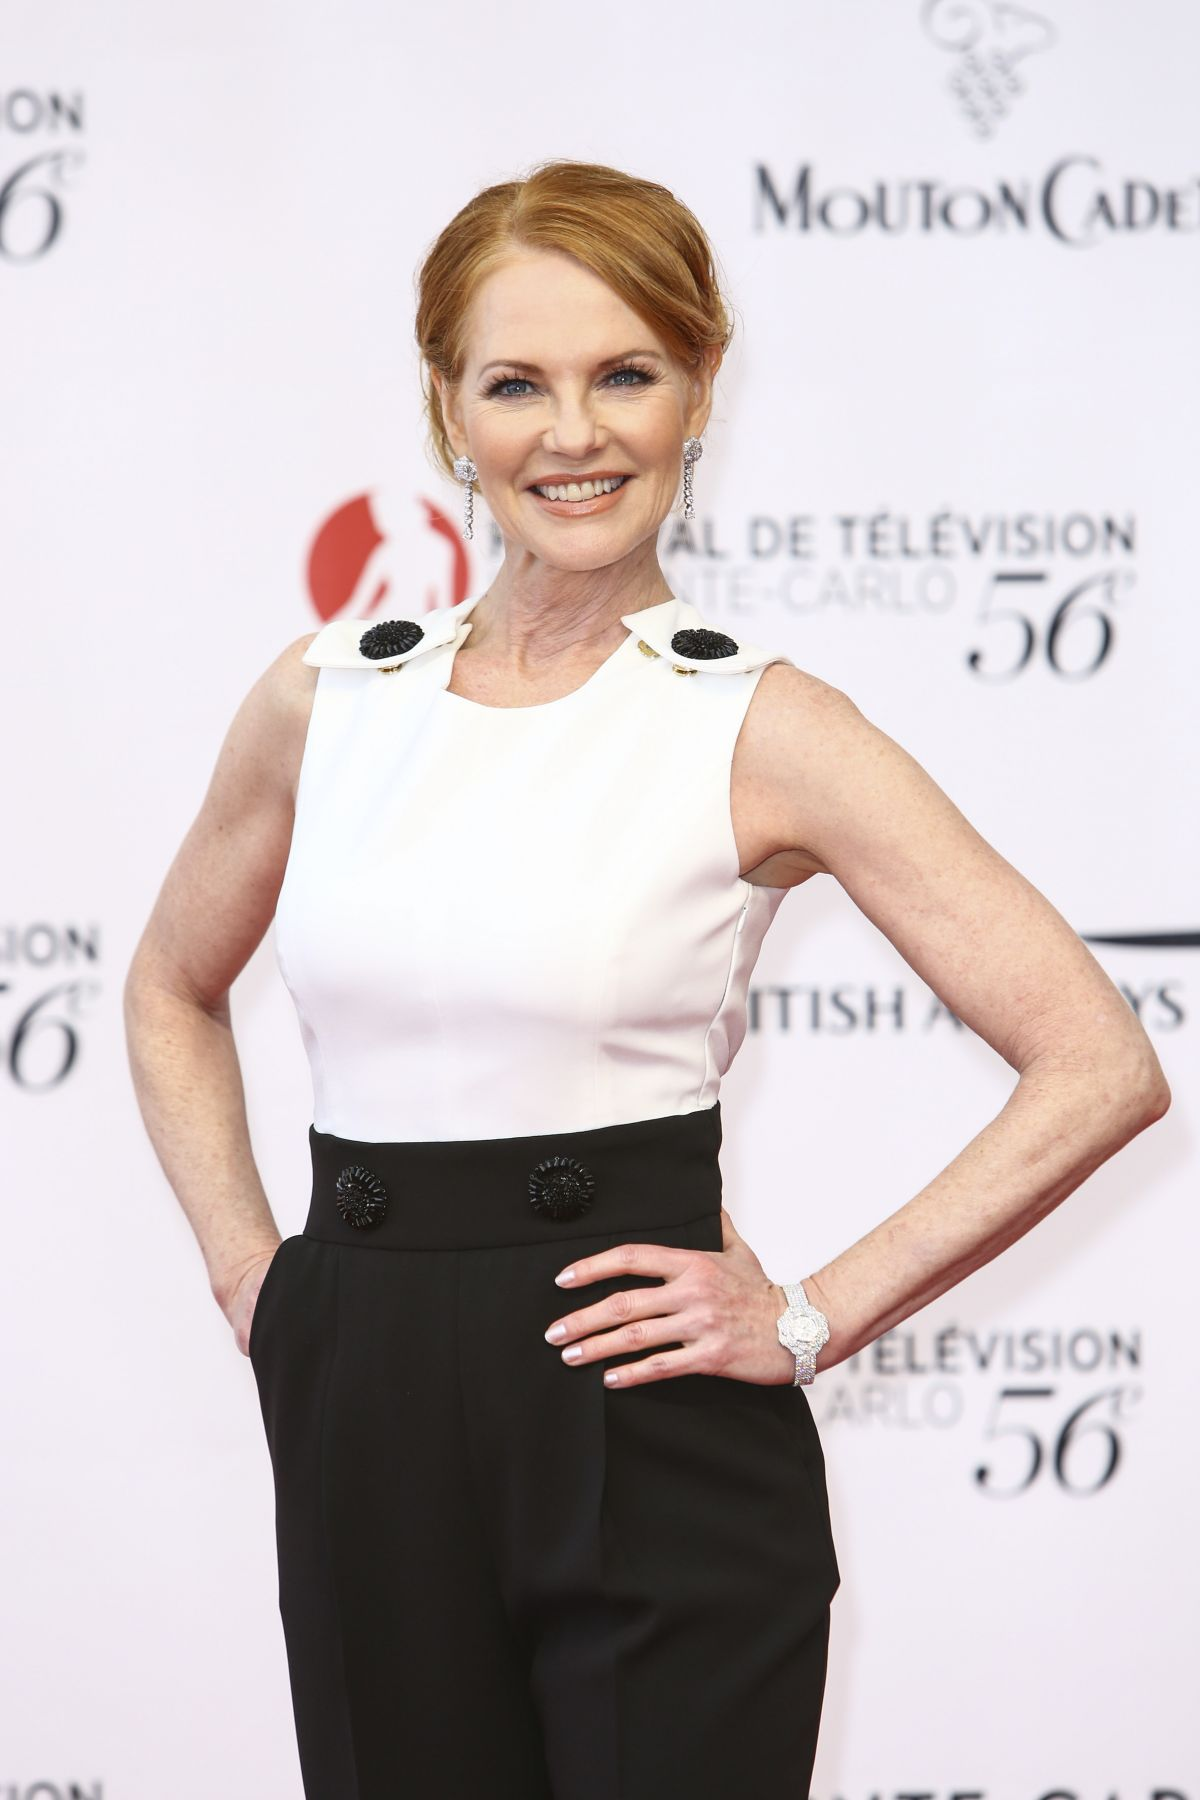 MARG HELGENBERGER at 56th Monte-Carlo Television Festival in Monaco 06/12/2016